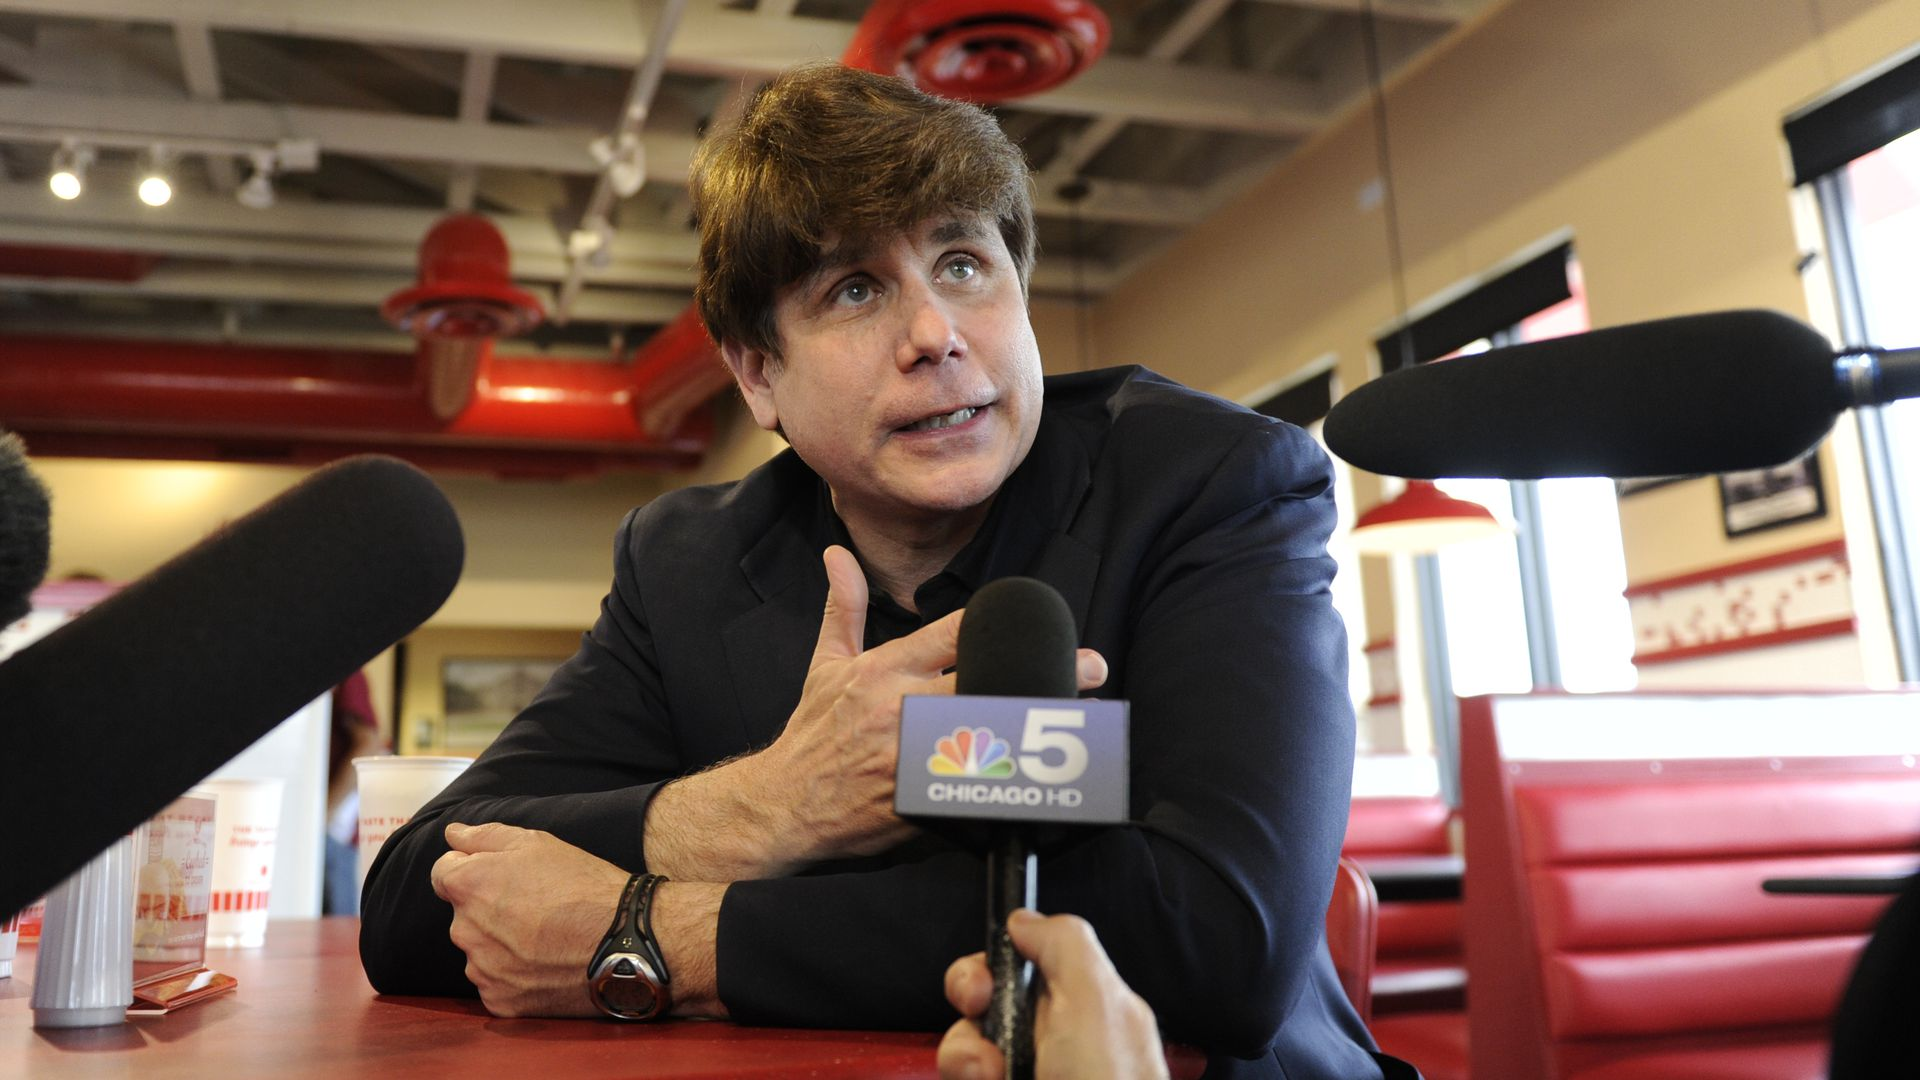 Former Illinois Gov. Rod Blagojevich at Freddy's Frozen Custard & Steakburgers before turning himself in to prison in Littleton, Colorado, to begin his 14-year prison sentence